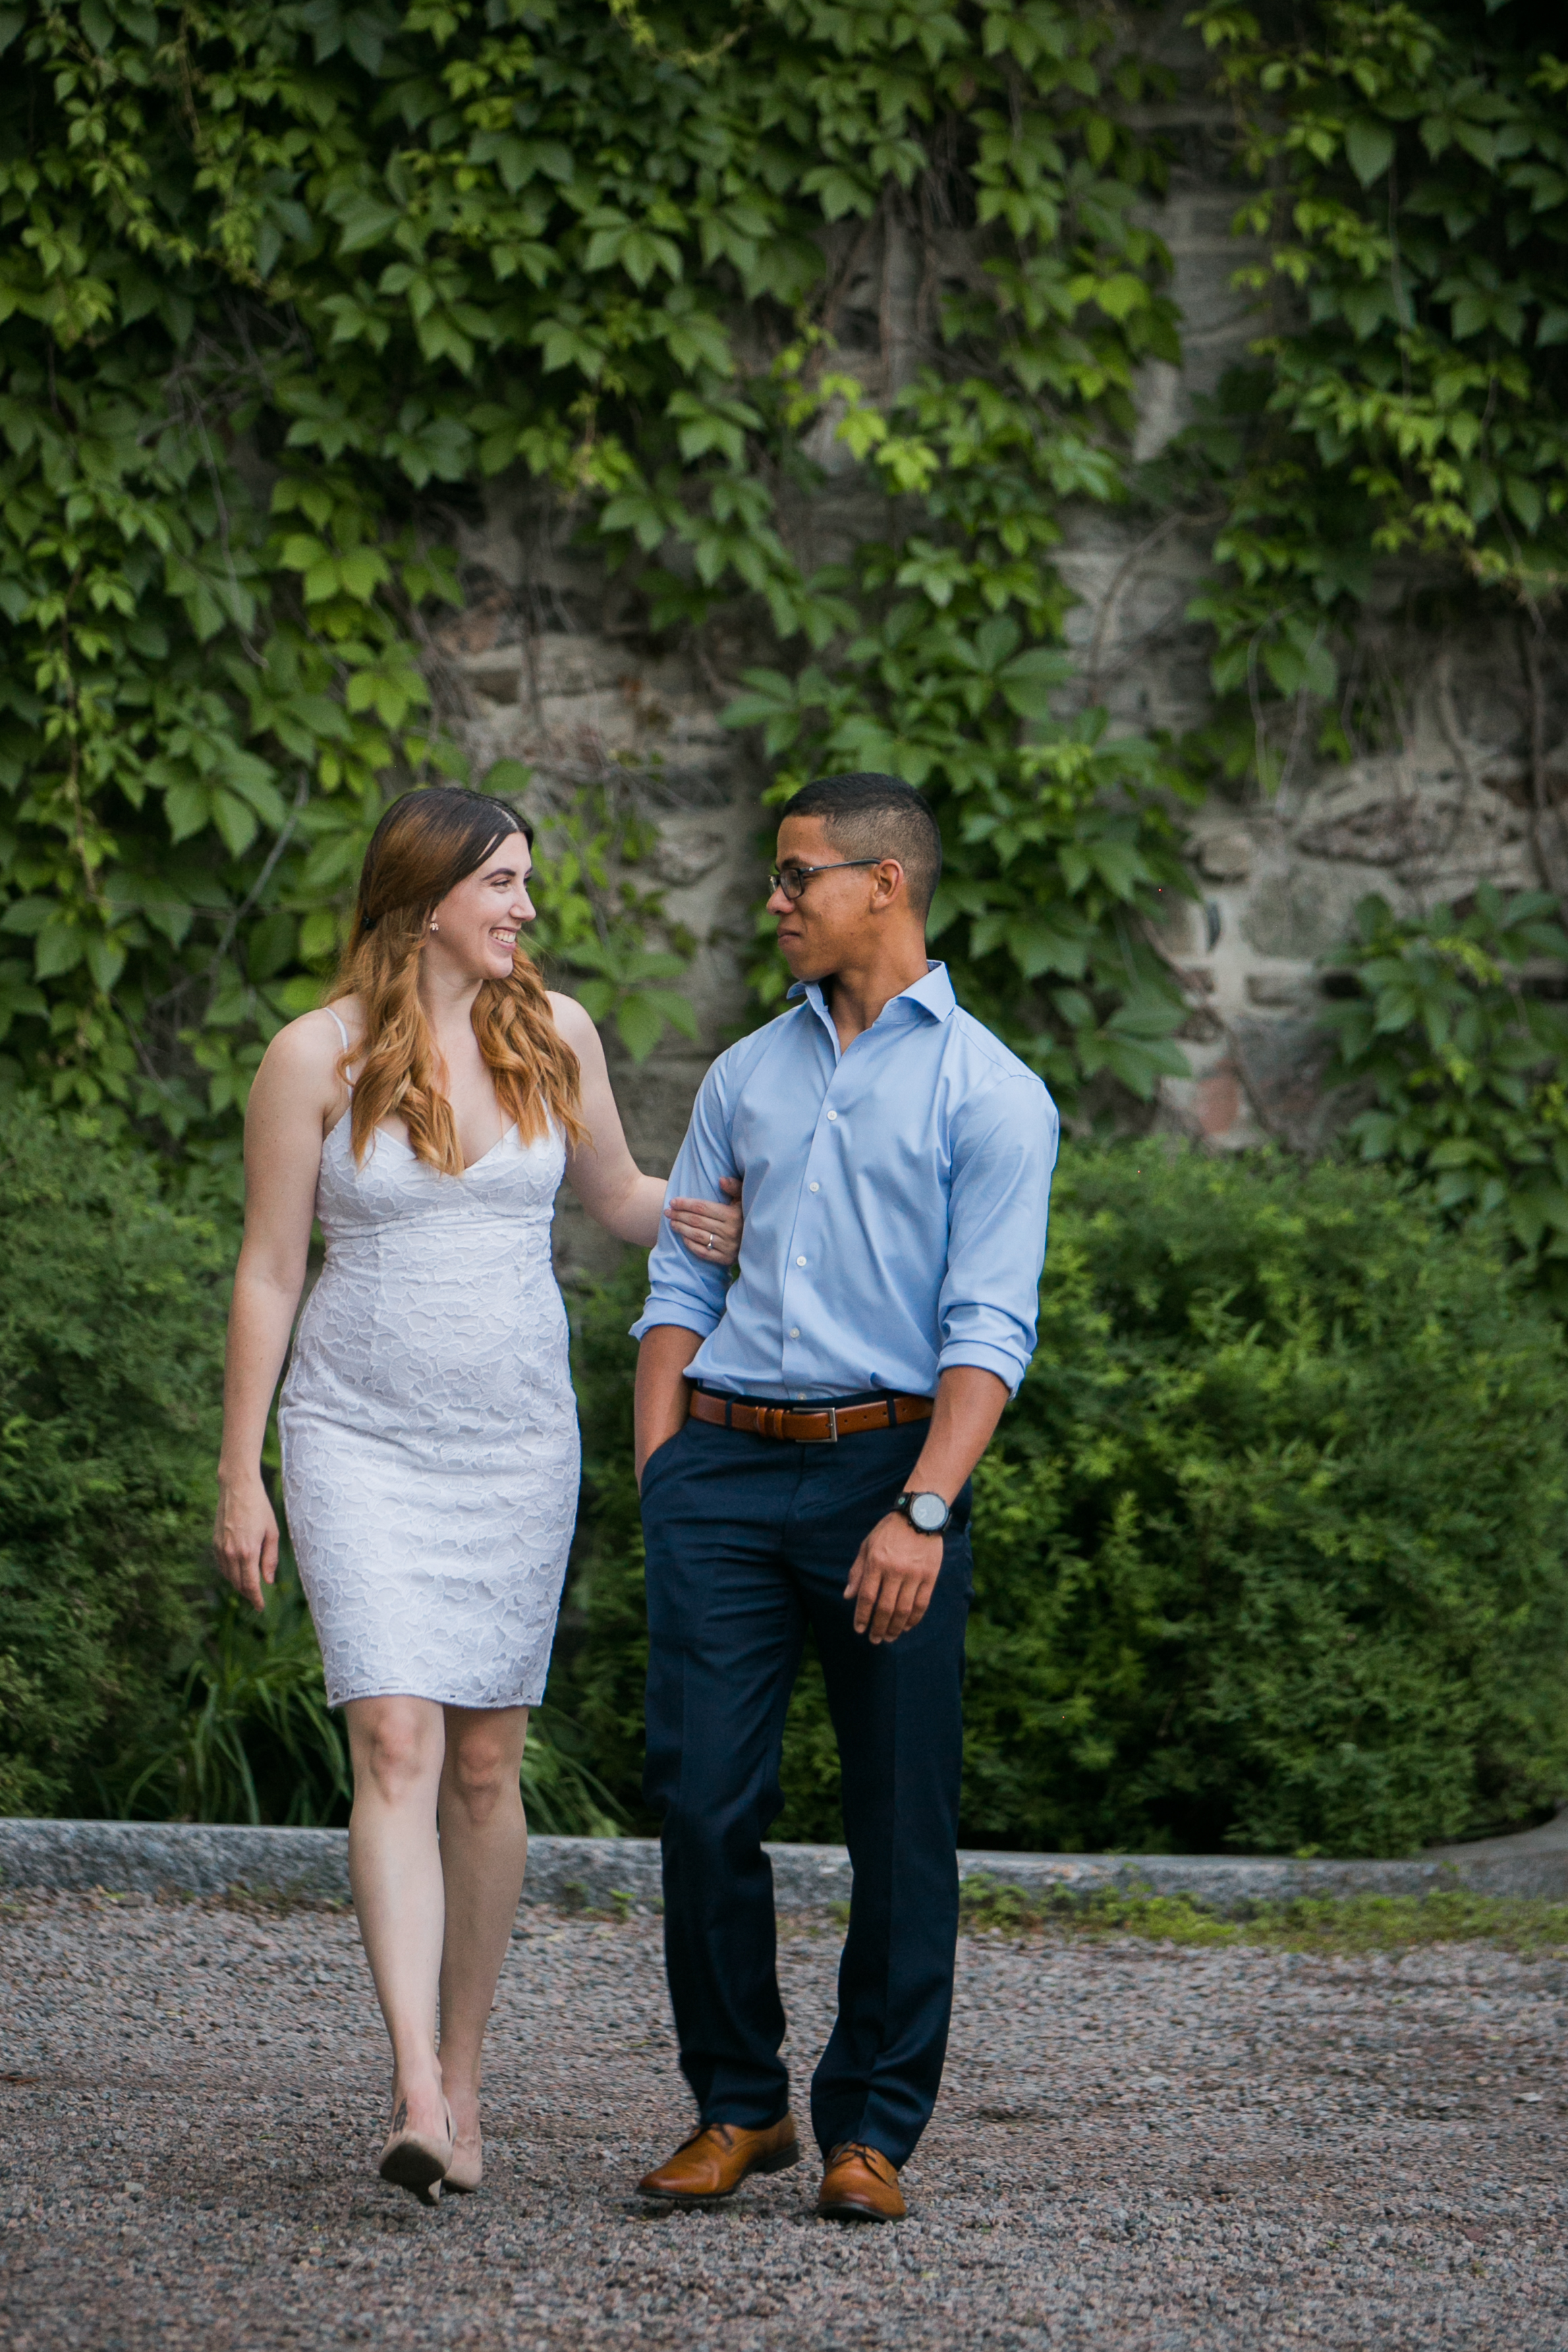 Vieux Old quebec engagement photos at sunset by Ness Photography.10.jpg